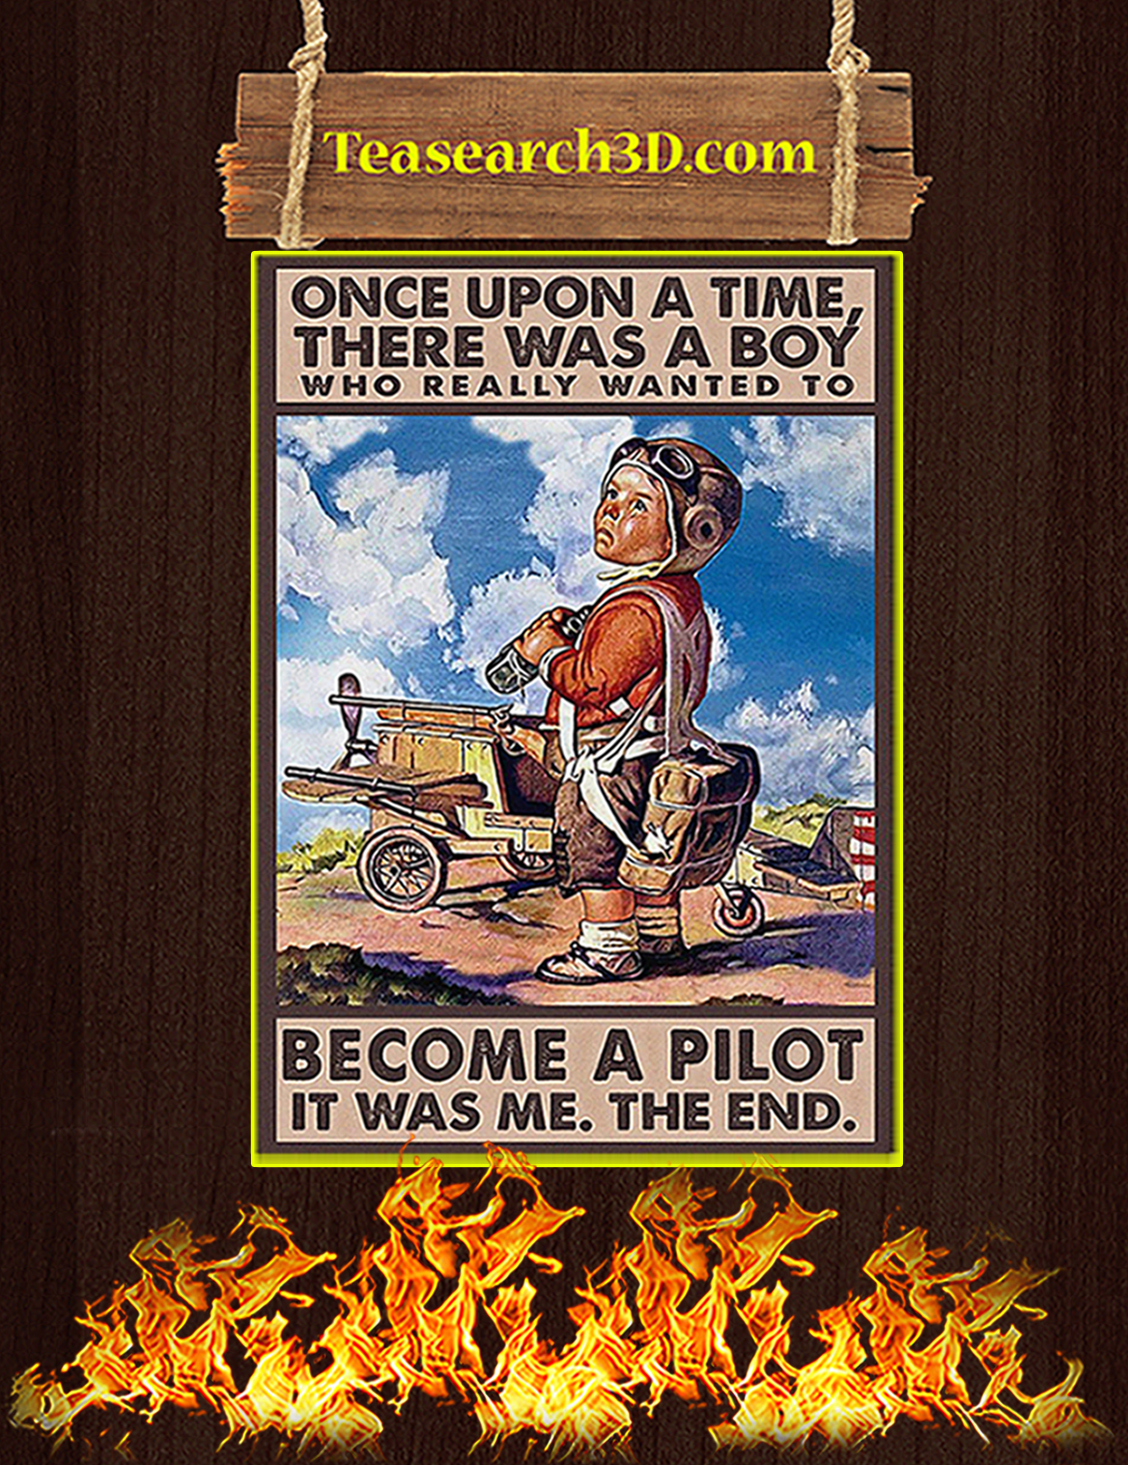 Once upon a time there was a boy who really wanted to become a pilot poster A3